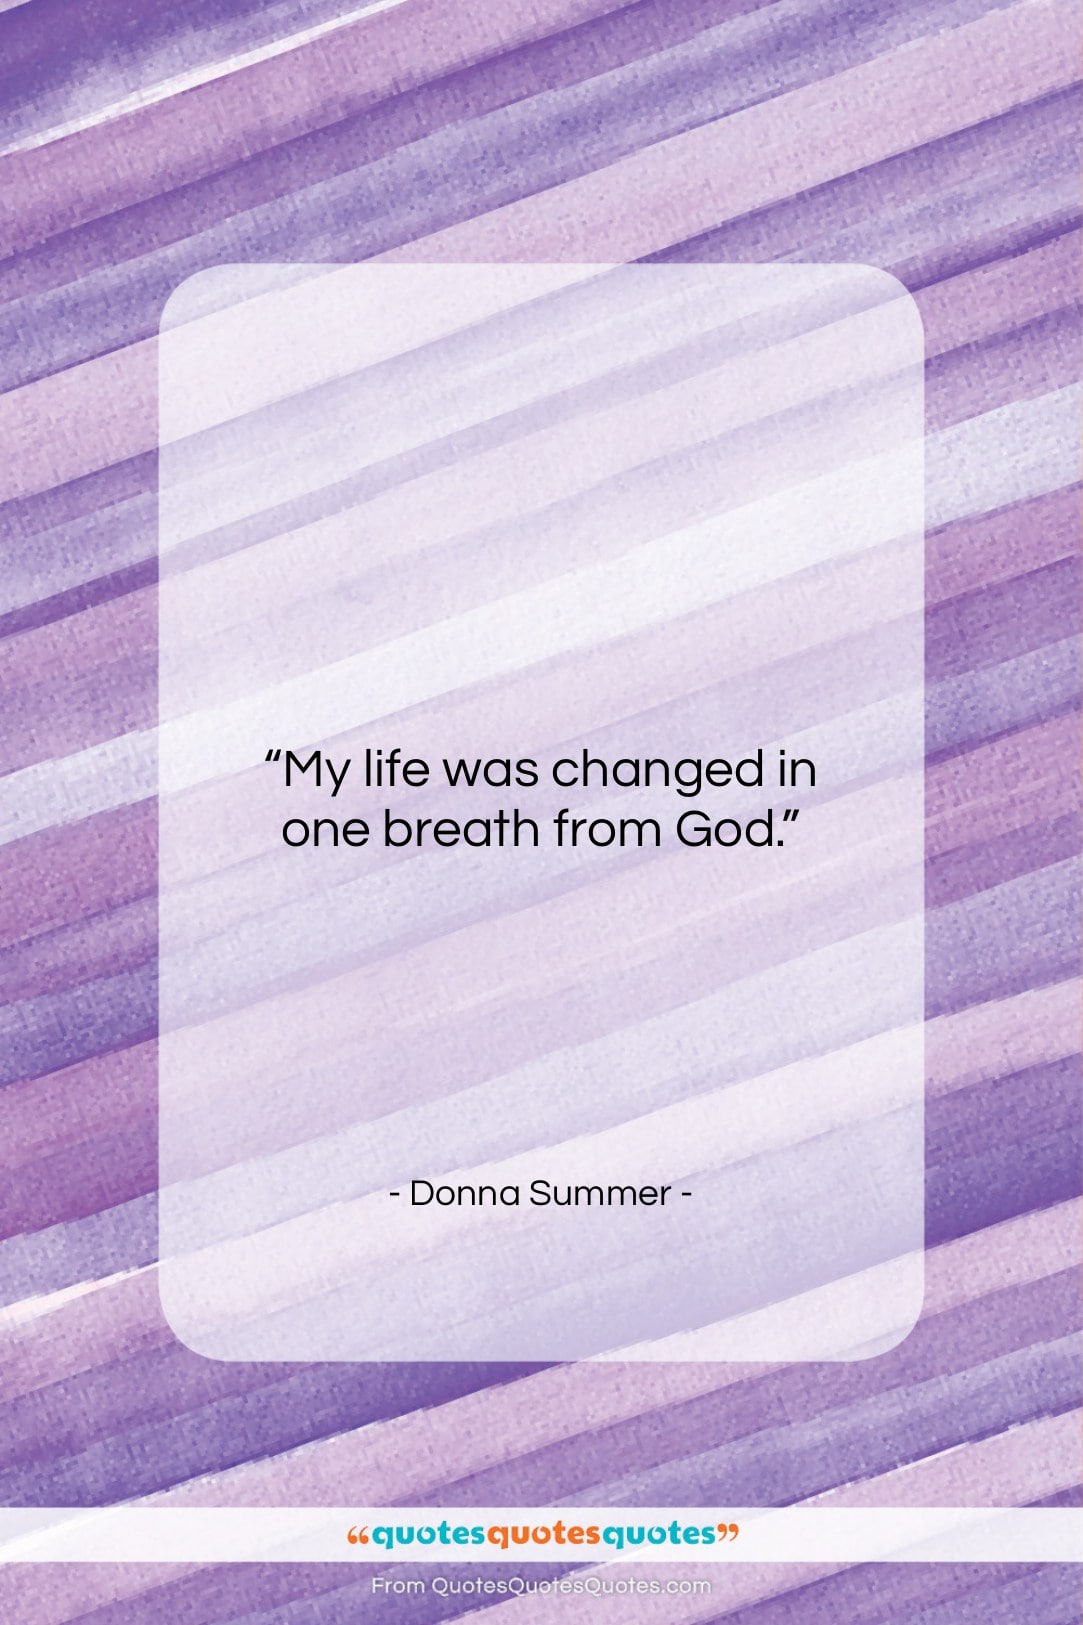 Get The Whole Donna Summer Quote My Life Was Changed In One Breath